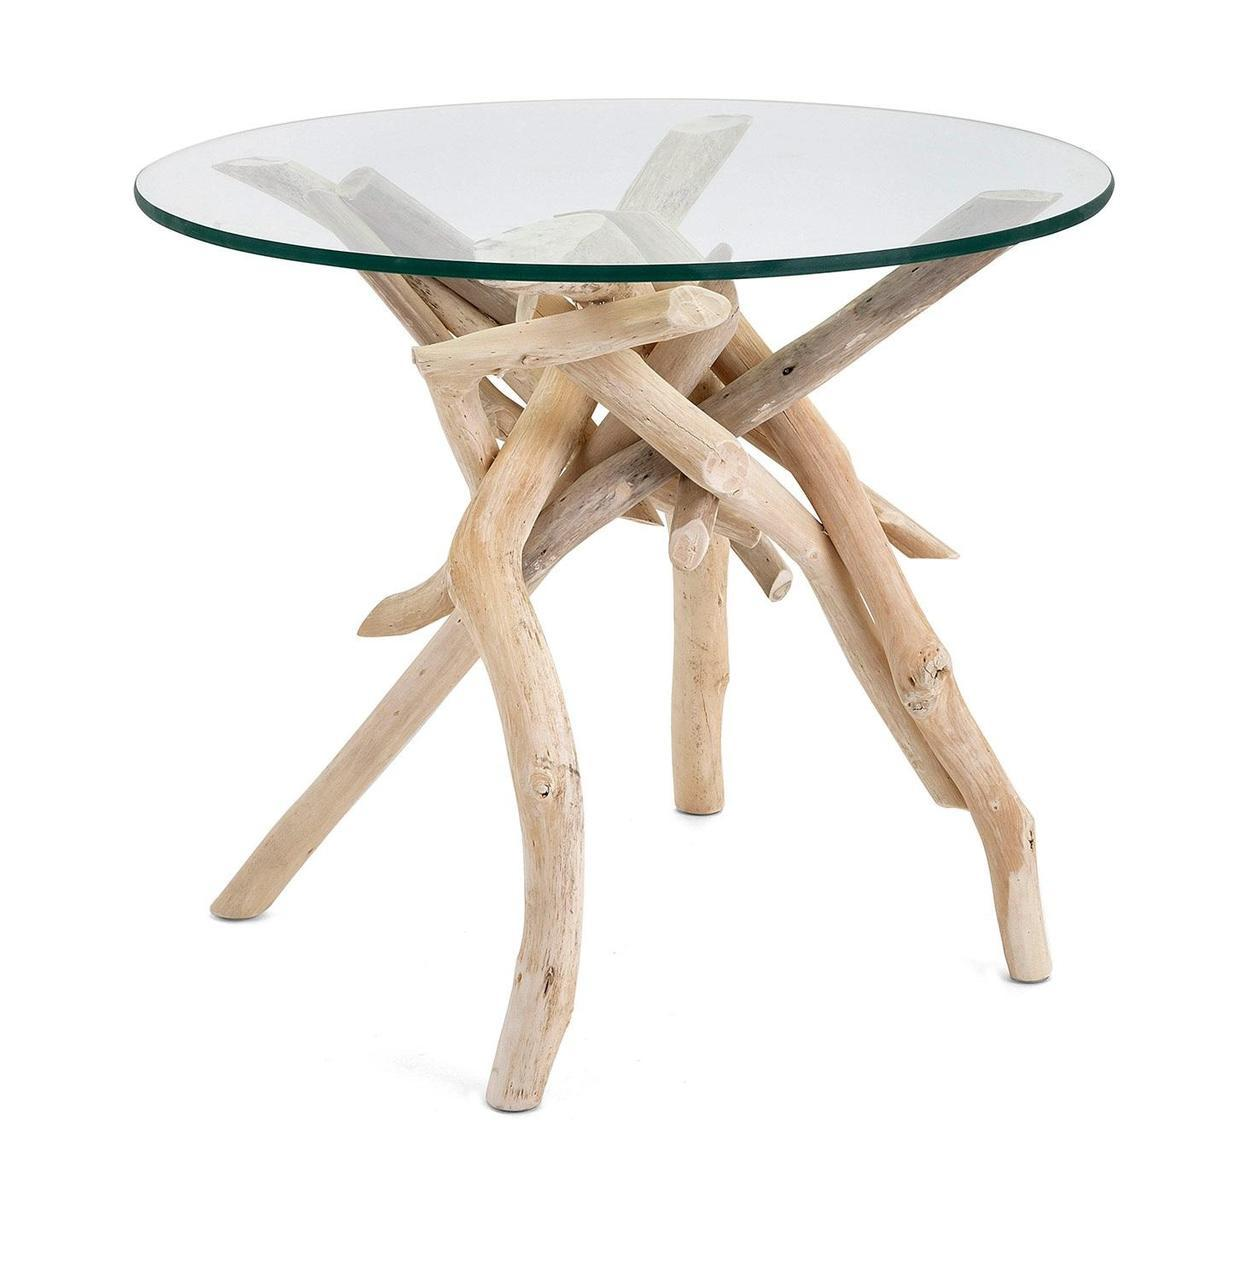 decorative driftwood legs with glass top accent table wood antique oak small ikea narrow end gold tablecloth red lamp parasol stand covers for outdoor tables rustic gray counter